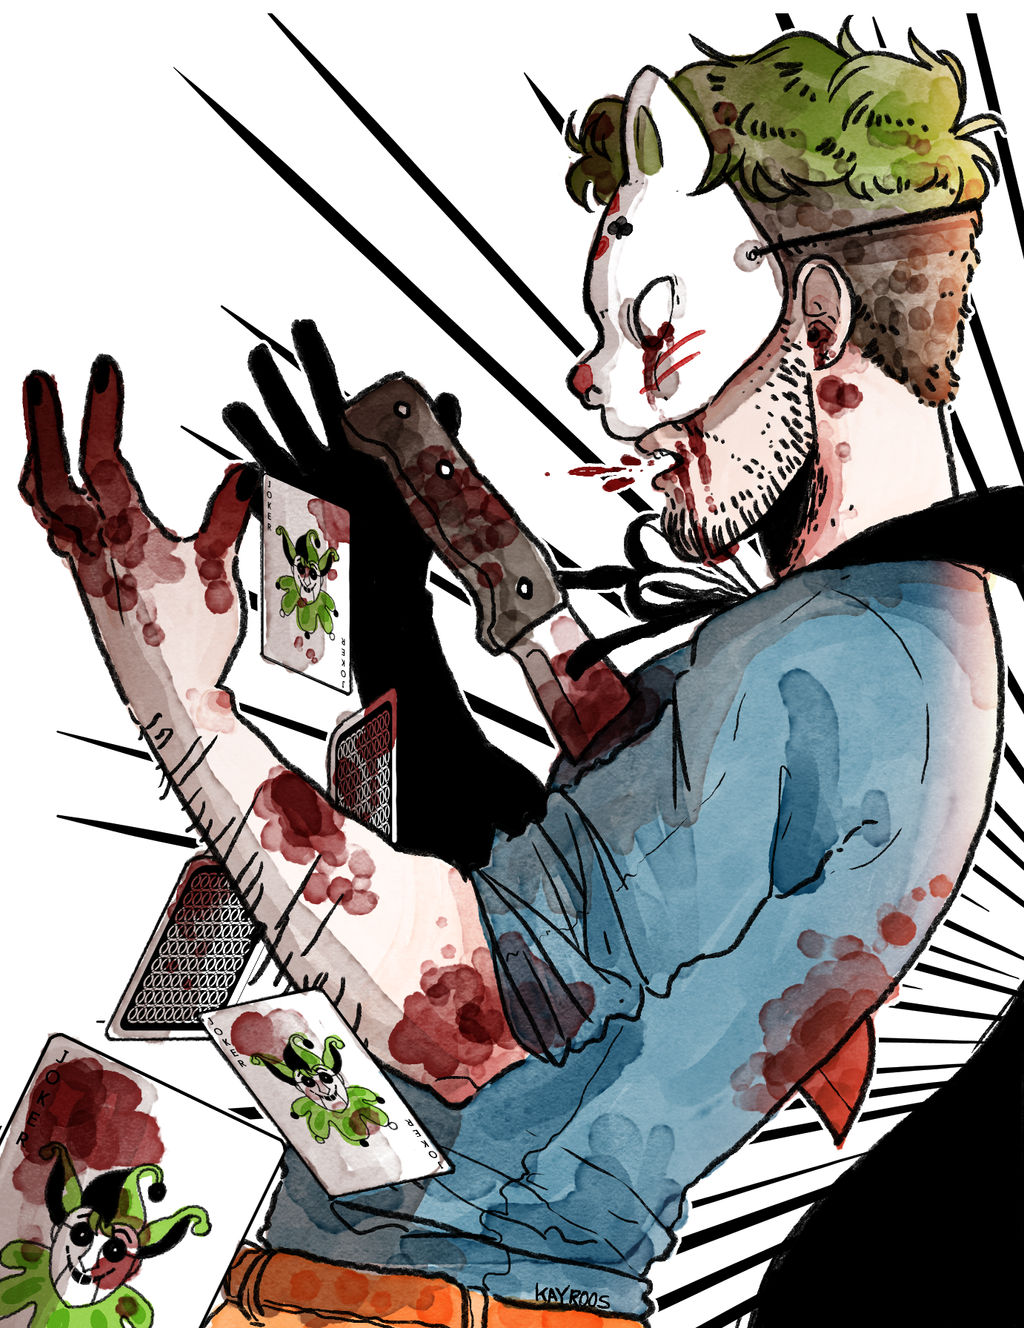 #septicart - How's that for a Trick?